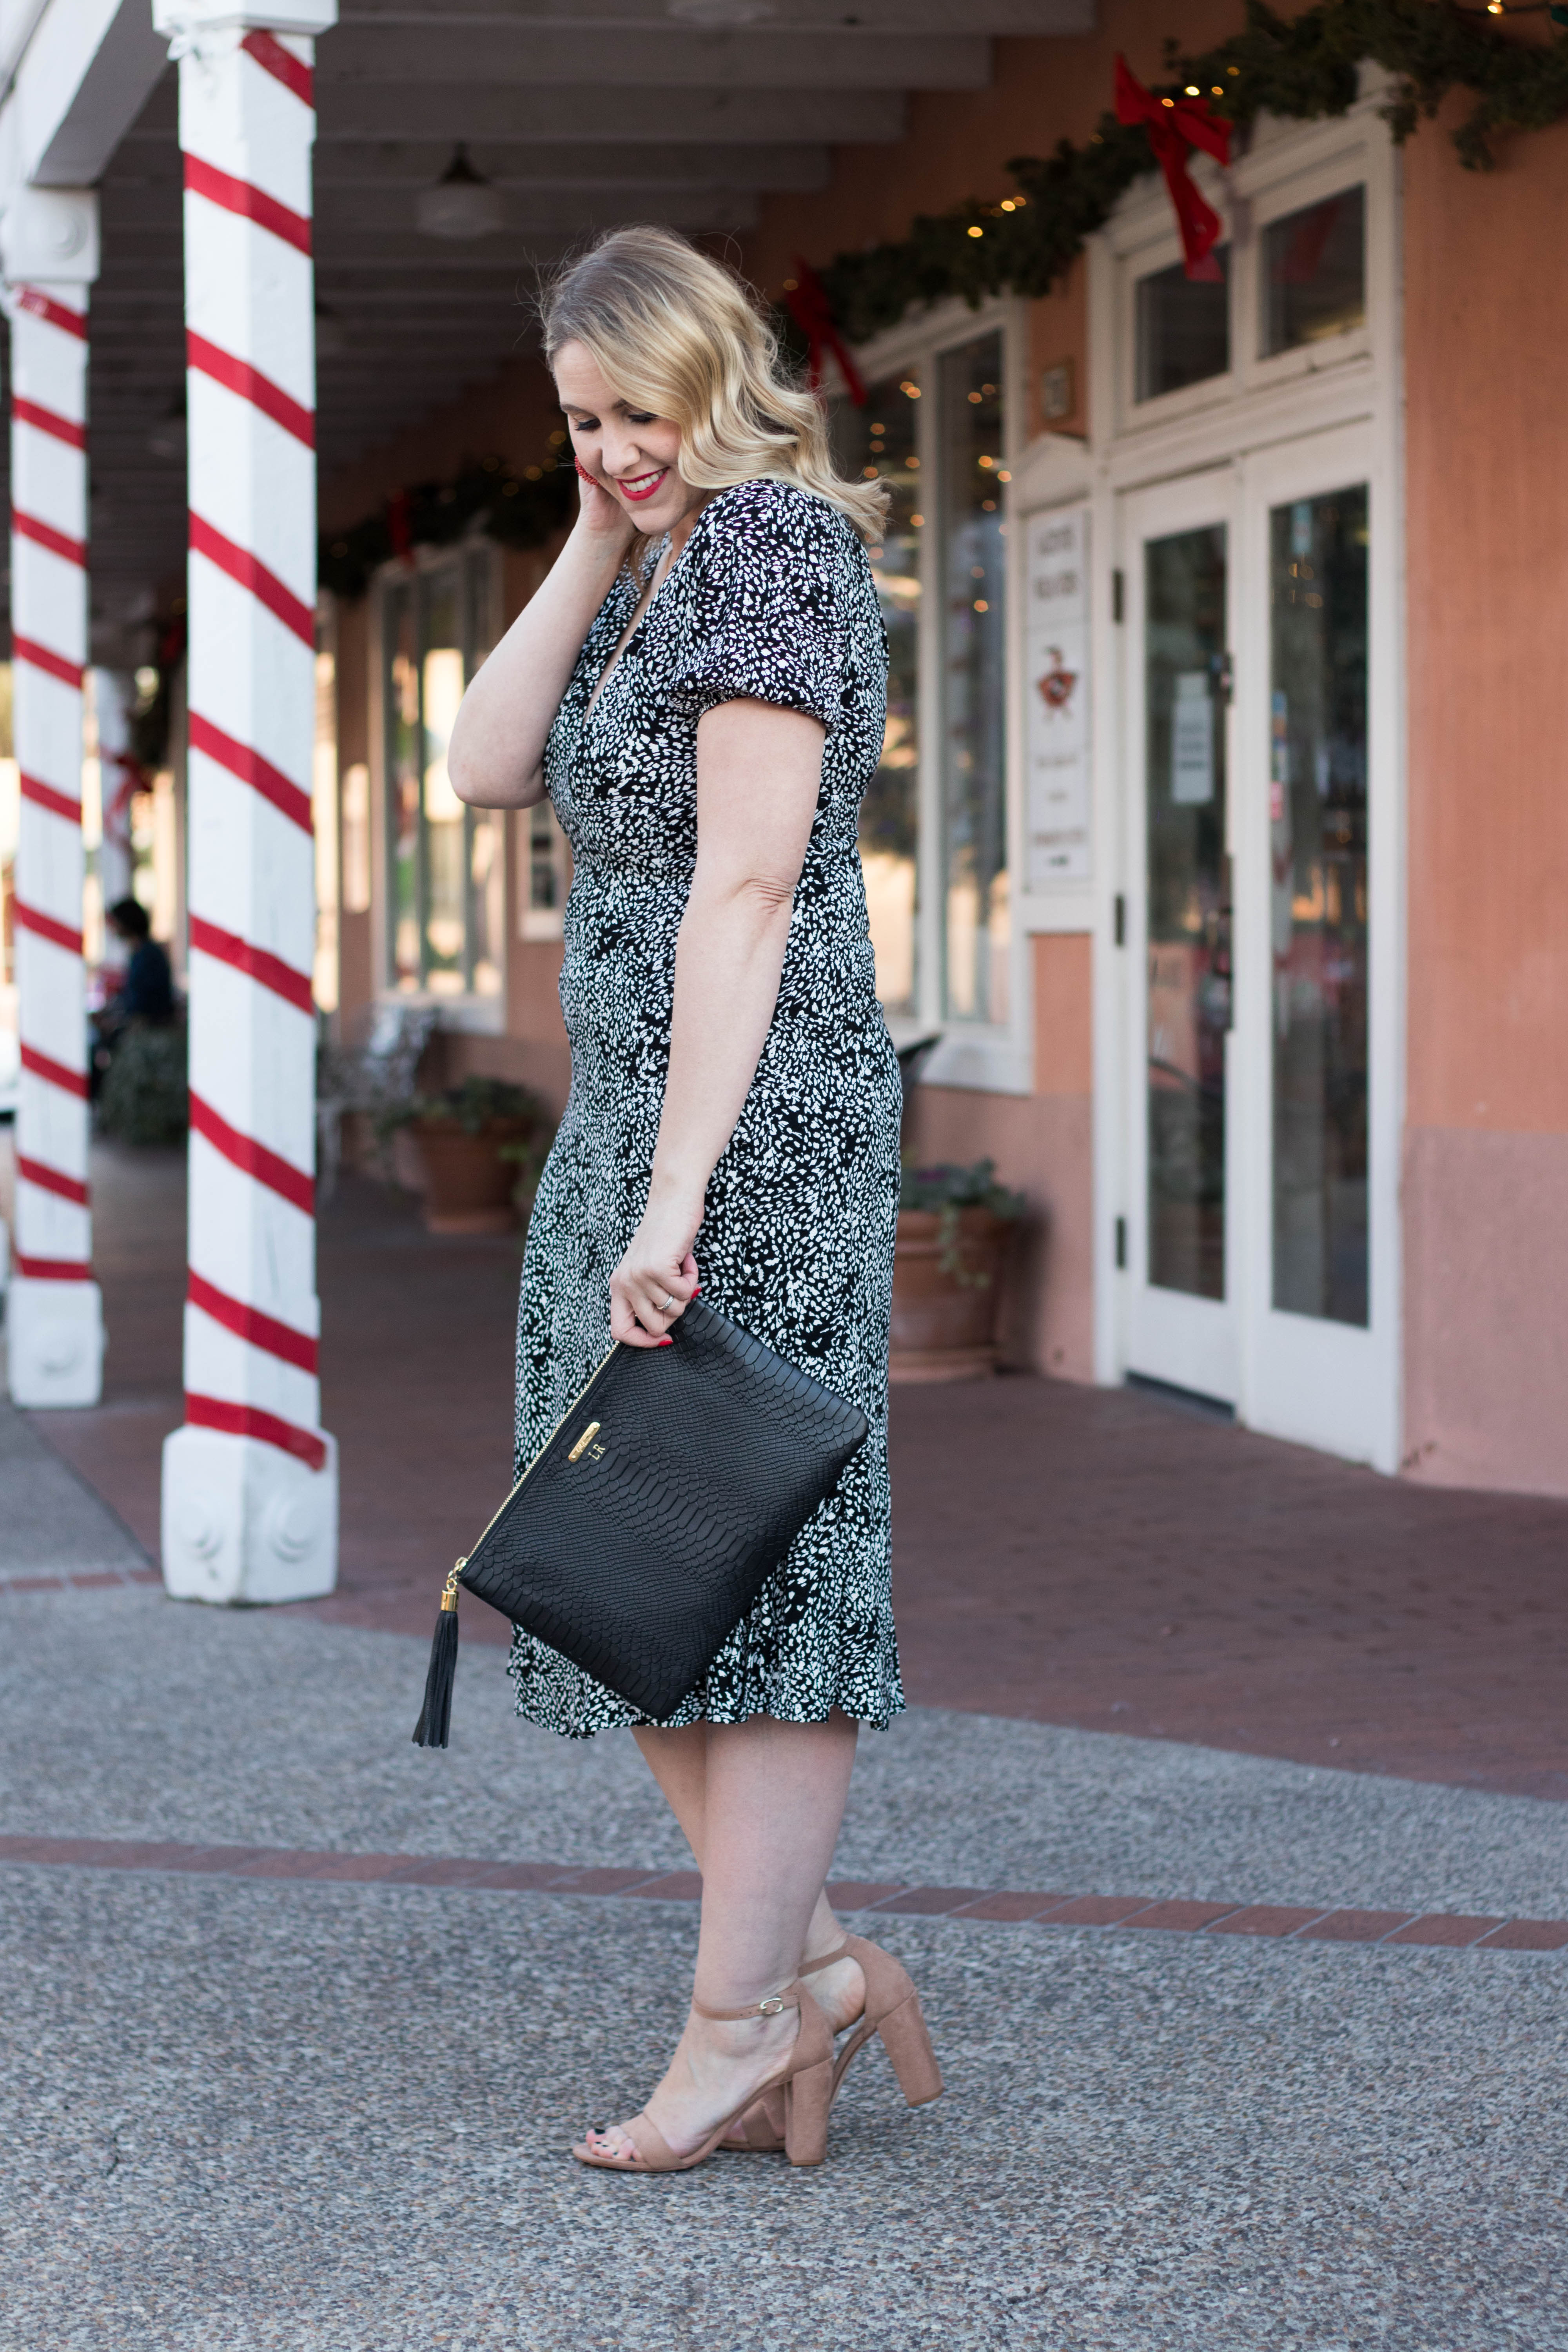 free people dress for the holidays #freepeopledress #holidaystyle #theweeklystyleedit